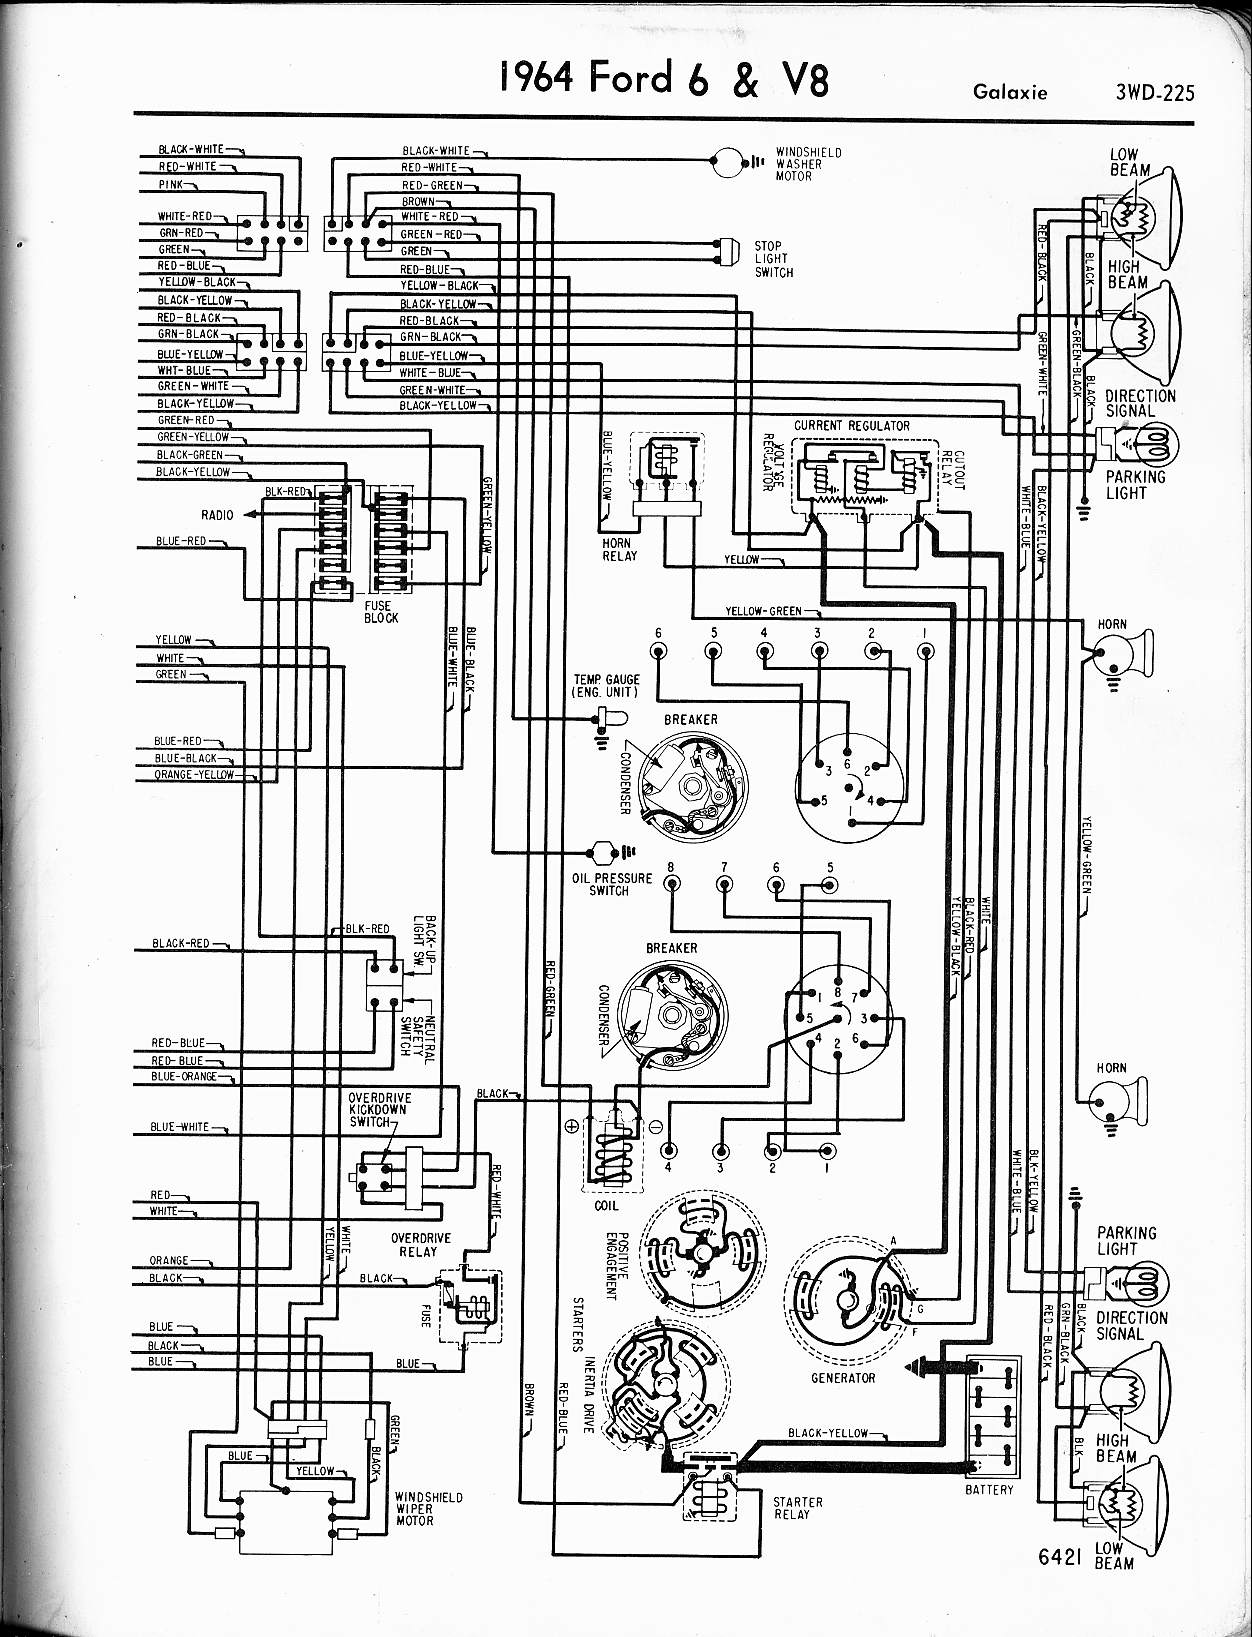 1964 mercury comet wiring preview wiring diagrams  wiring diagram besides 1969 mercury cyclone wiring diagram likewise 1964 mercury comet afx 1964 mercury comet wiring